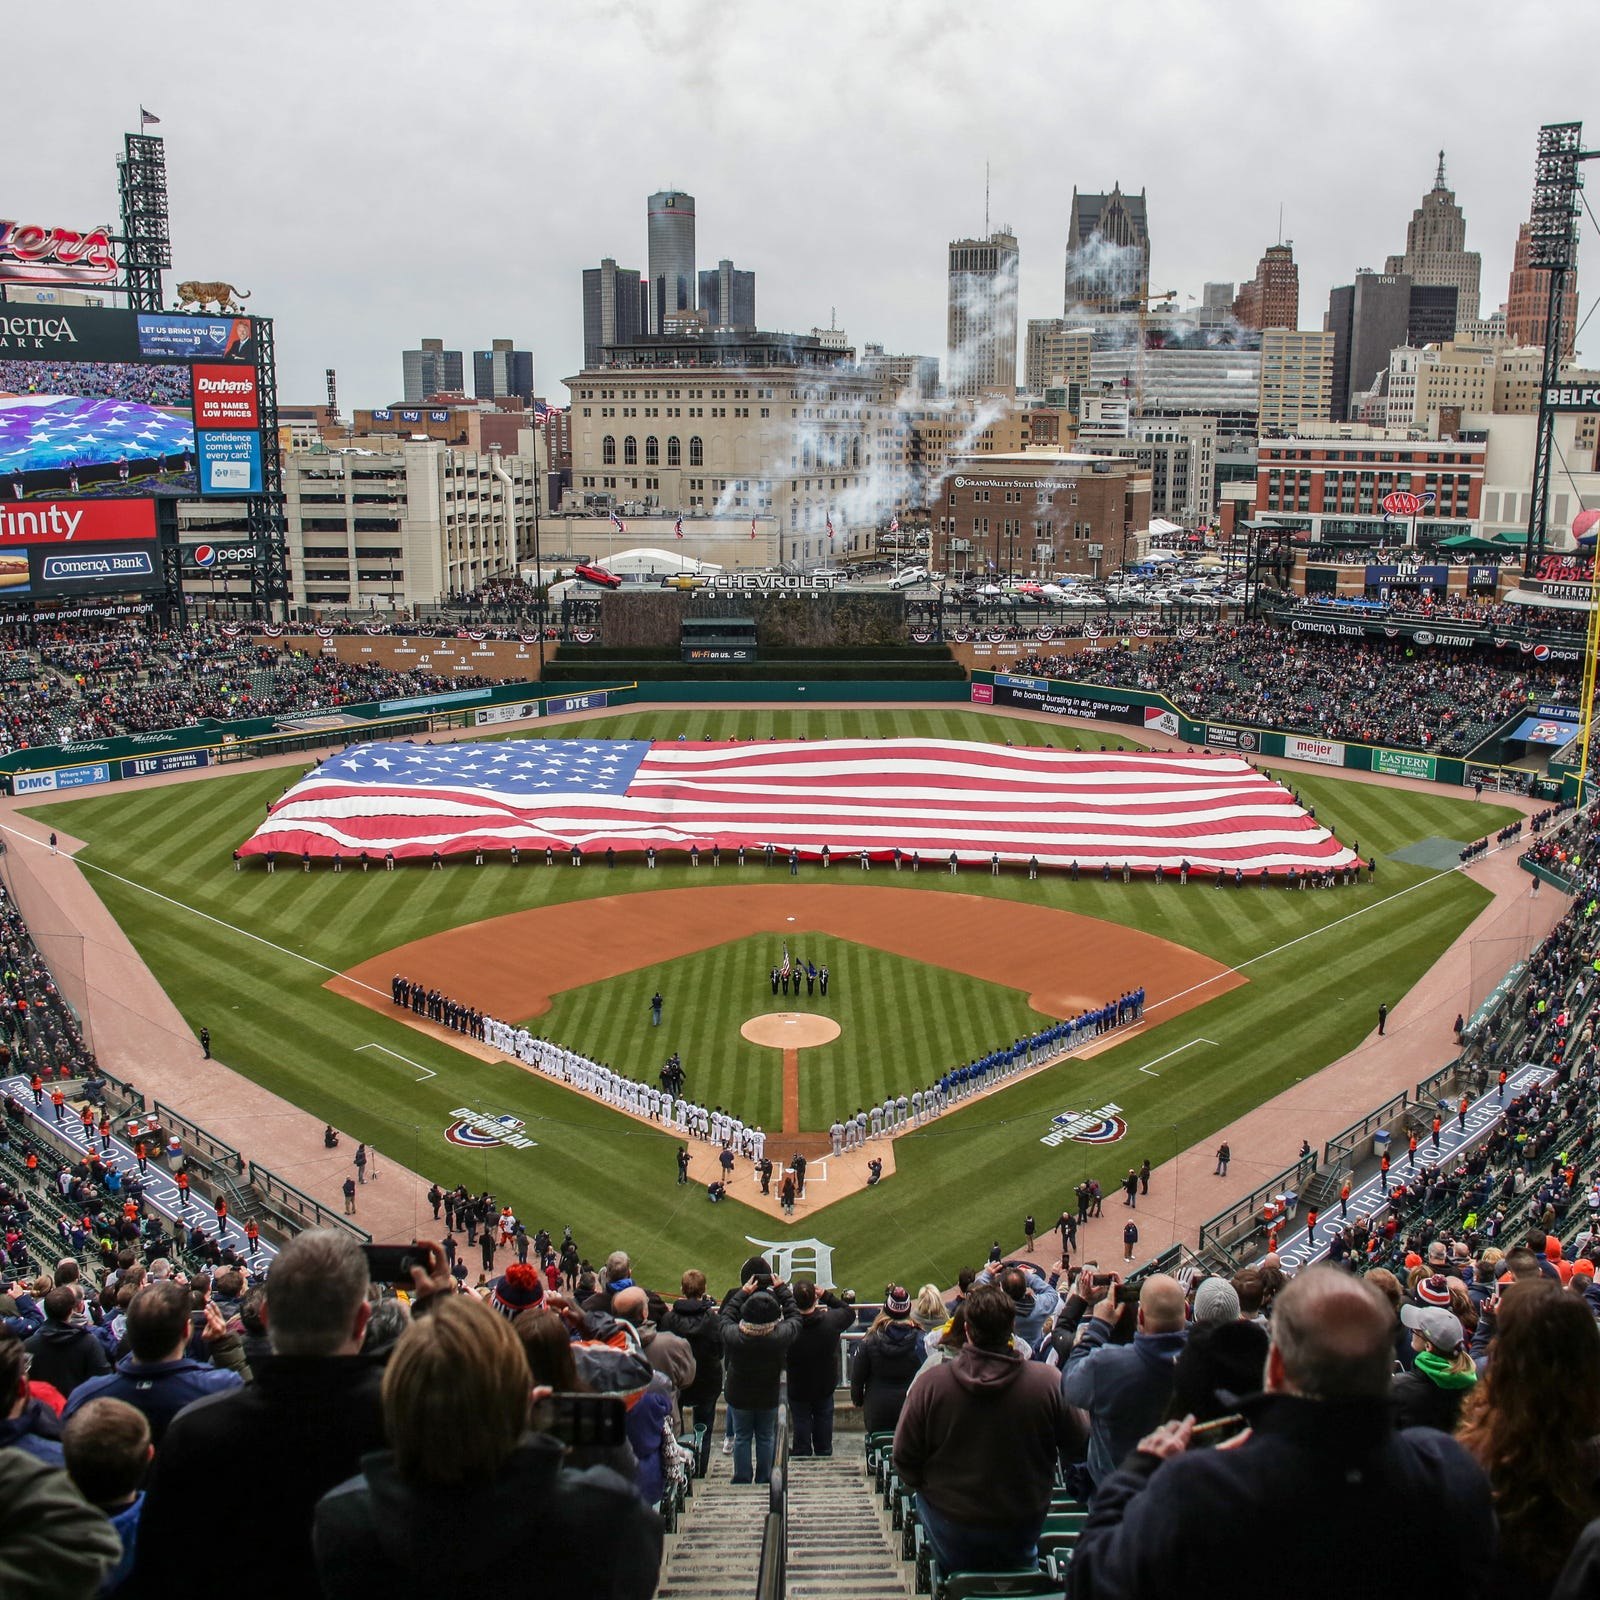 Lakeland Eagles baseball team will play at Comerica Park this weekend